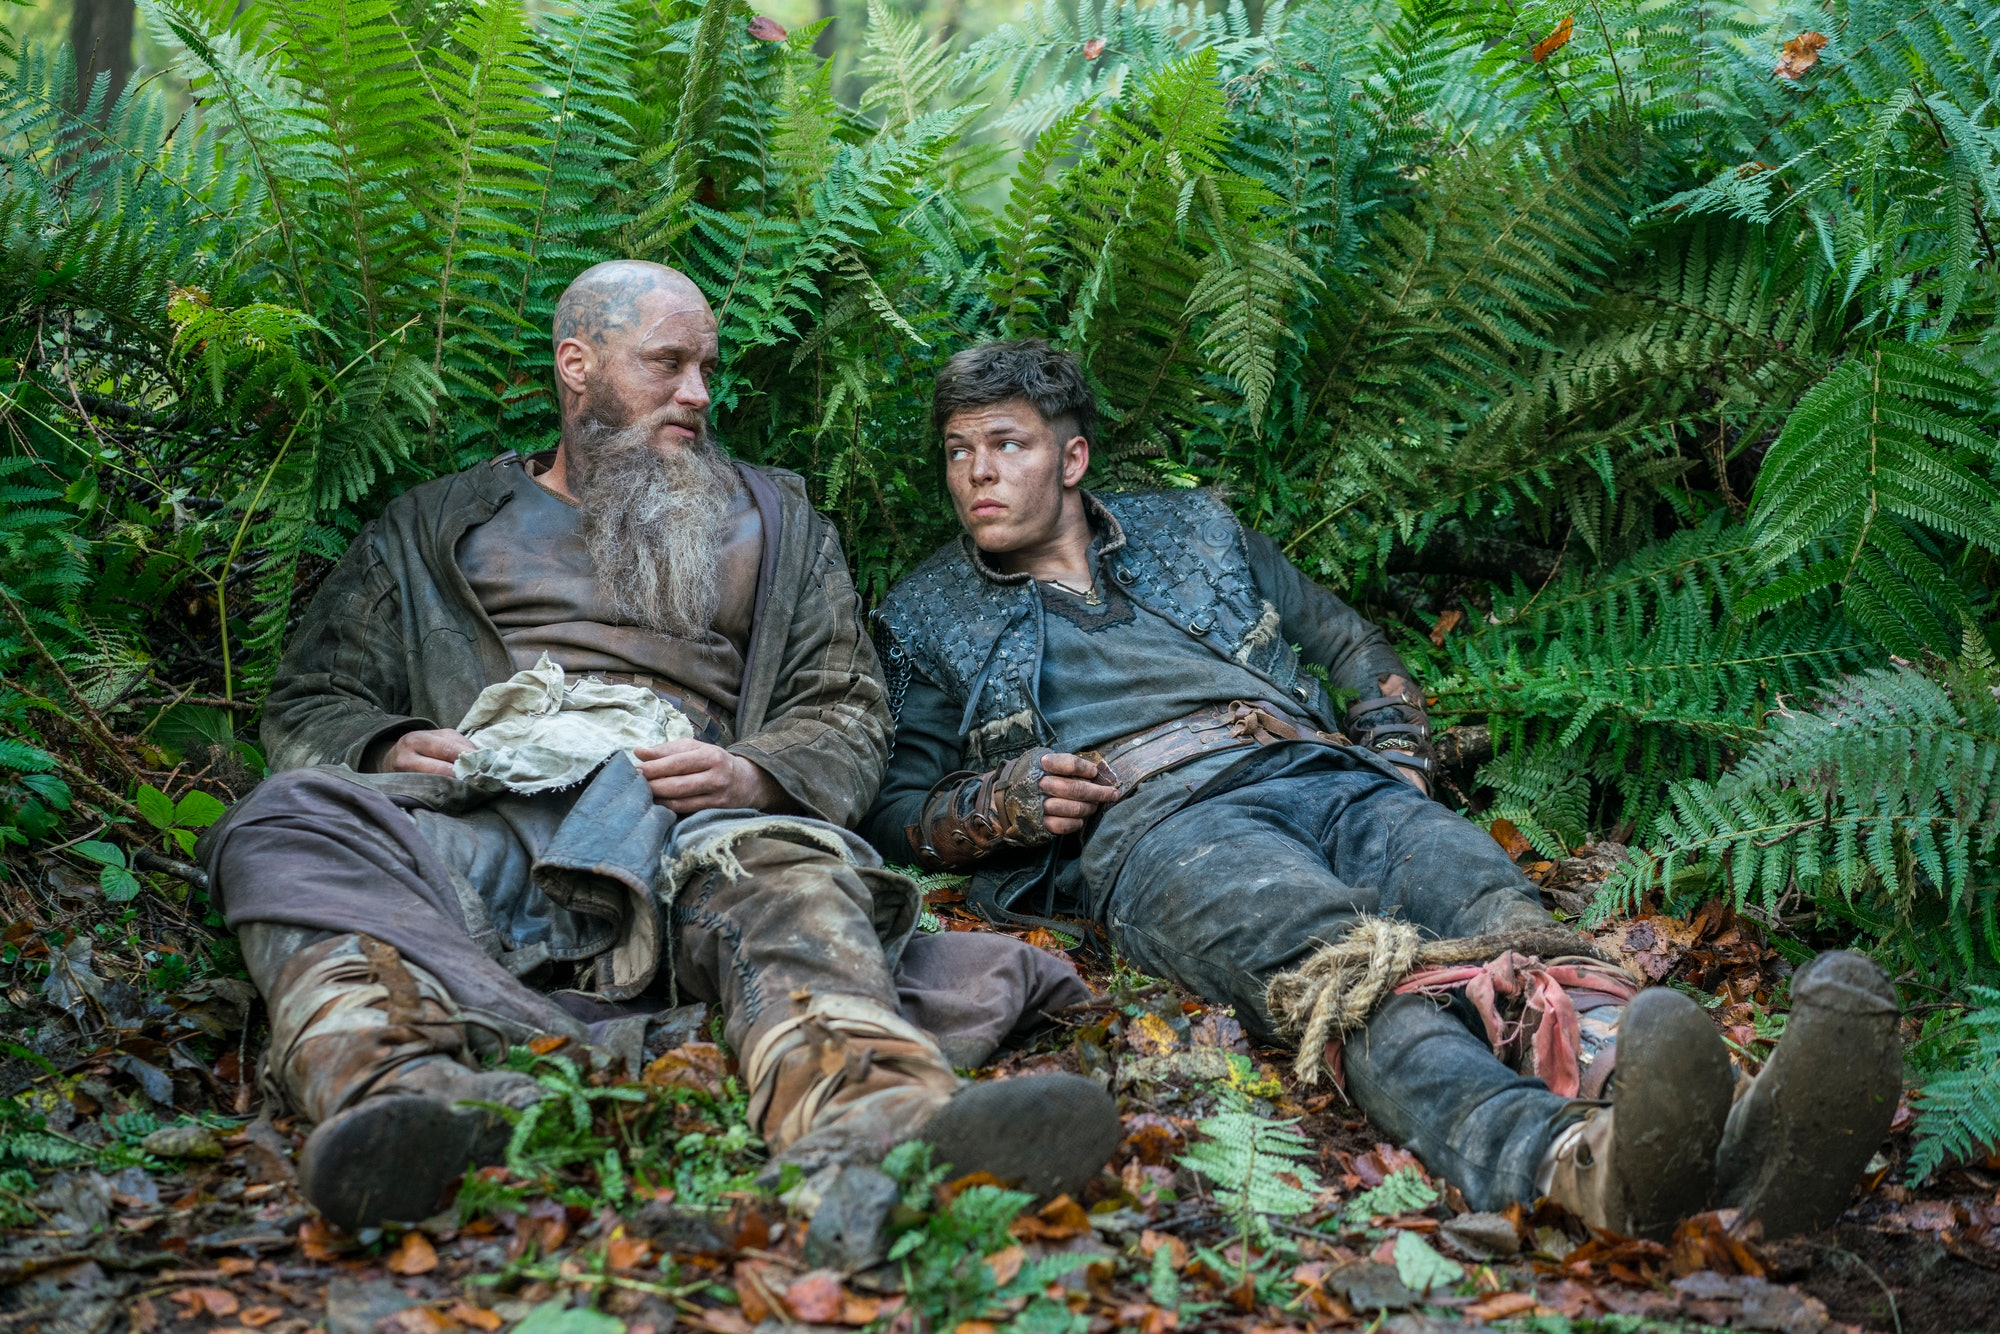 Travis Fimmel and Alex Hogh Anderson in 'Vikings'